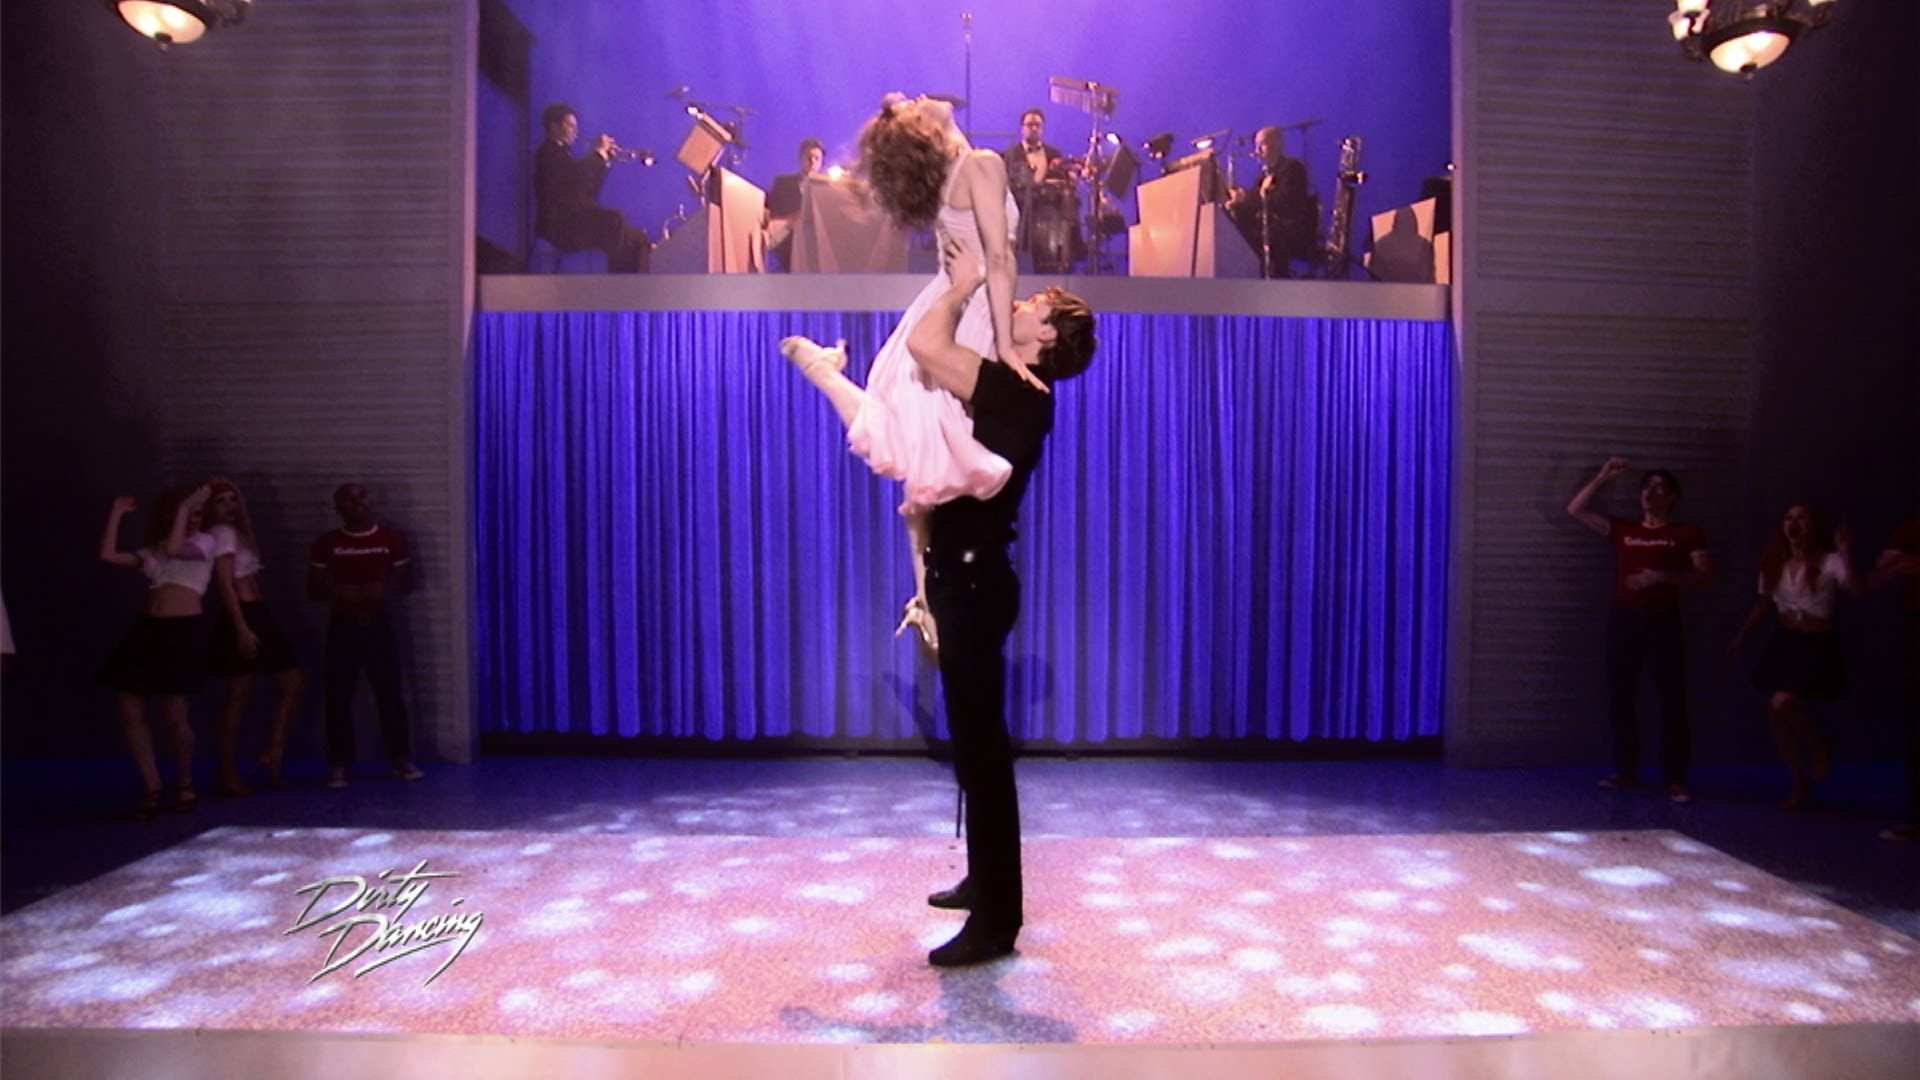 Res: 1920x1080, Dirty Dancing musical - The Dance and Music